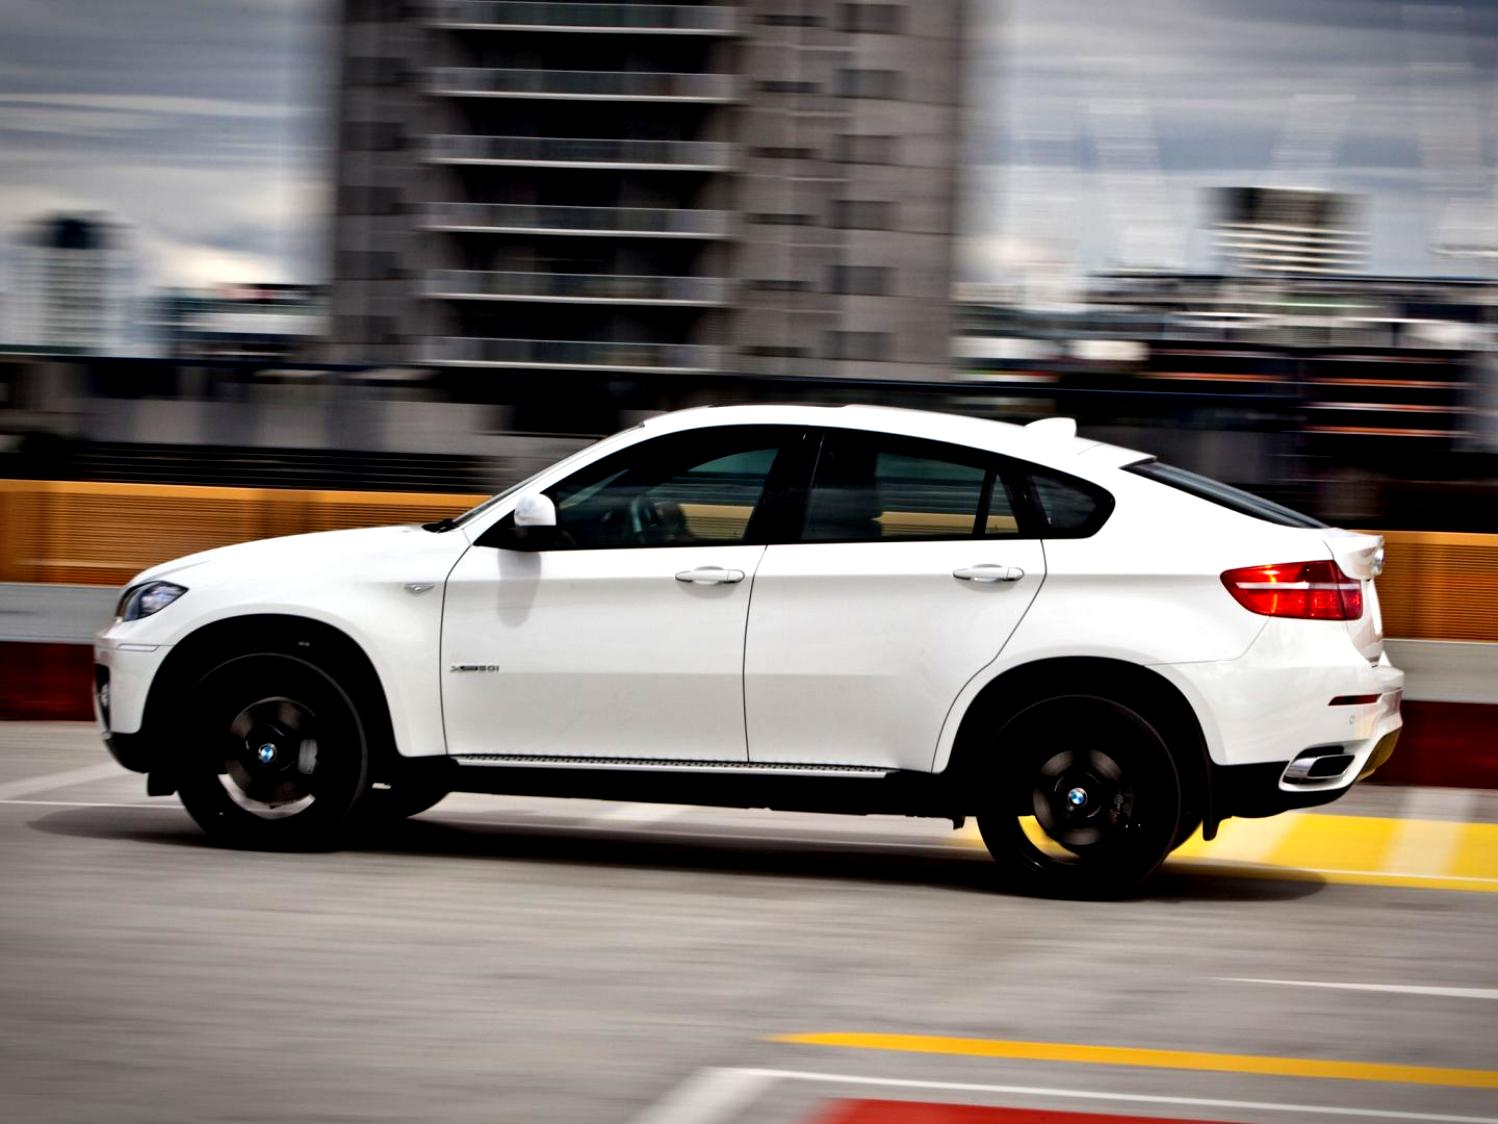 Bmw X6 E71 2010 On Motoimg Com